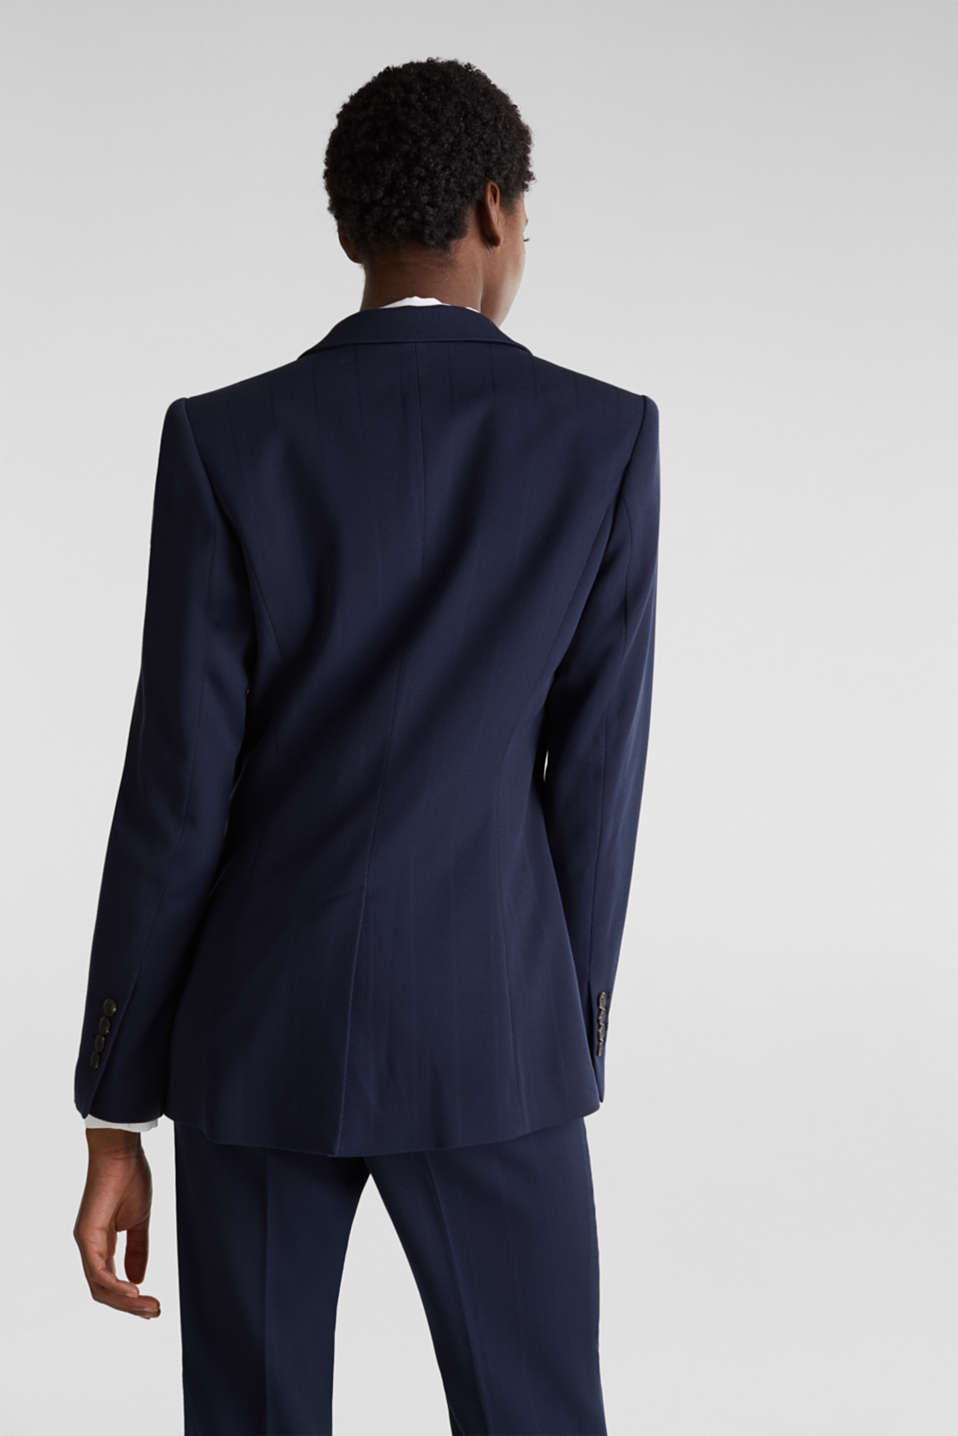 STRUCTURE STRIPES textured blazer, NAVY, detail image number 3